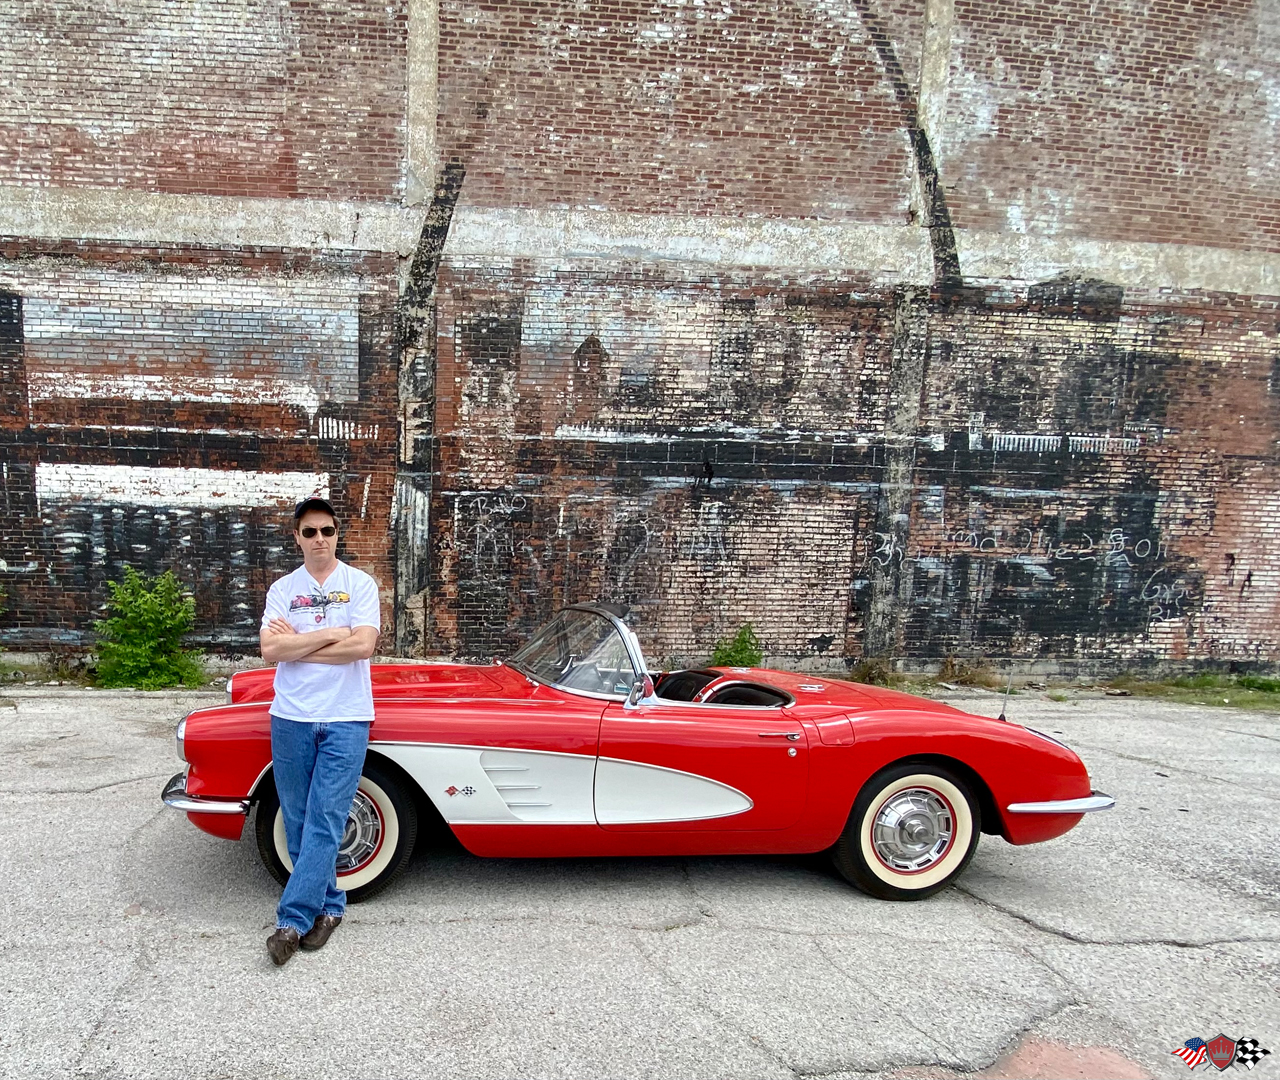 Crown Auto Parts owner Mike Horwitz with the 1960 Corvette out front of Crown's Famous St Louis Arch mural